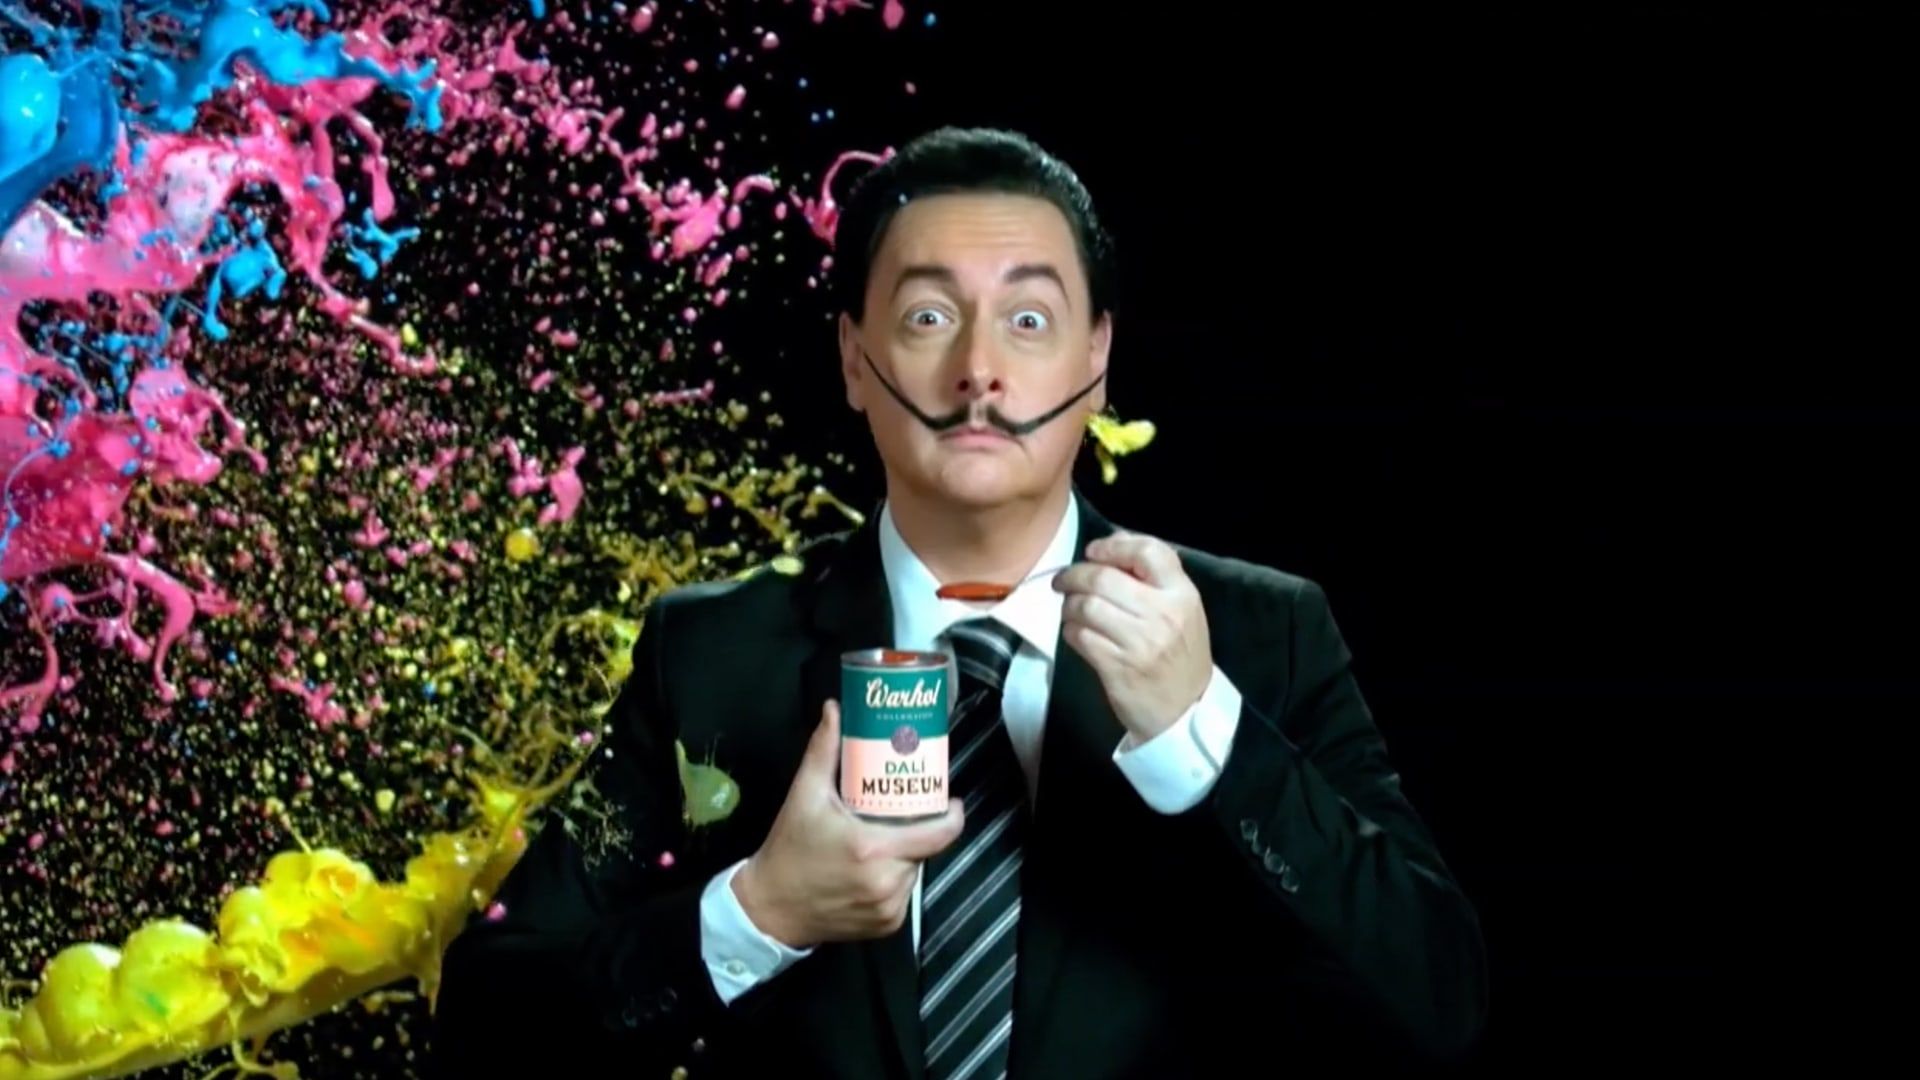 A man dressed as Salivdor Dali holding an andy Warhol soup can is about to be covered in incoming blue, pink, and yellow paint.